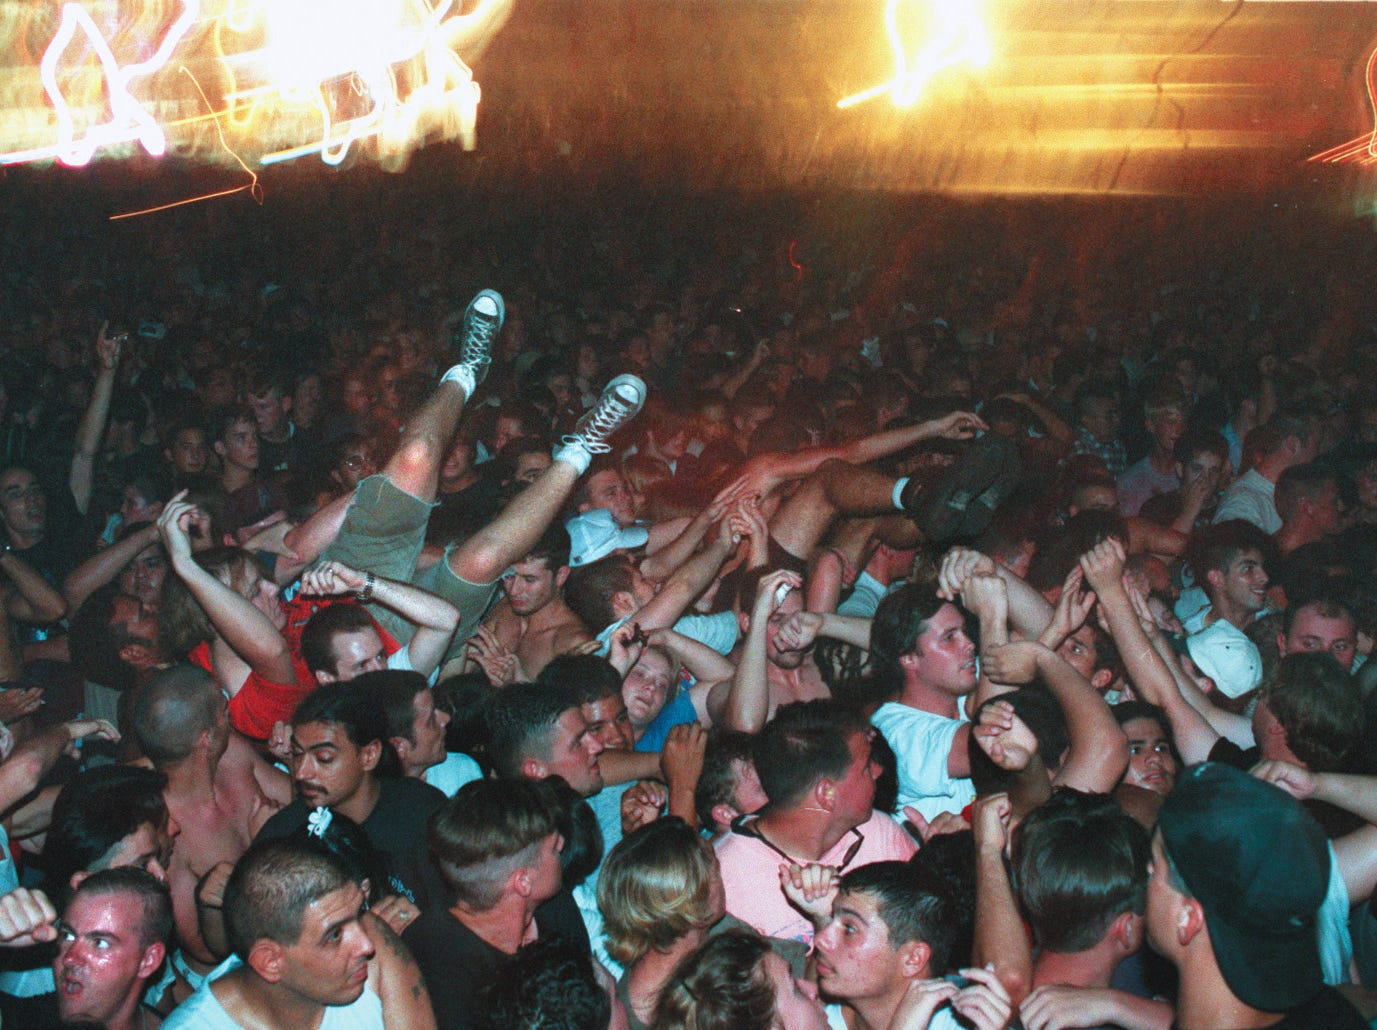 Concert goers are carried over the crowd at Texas Sky Festival Park in Corpus Christi during the Butthole Surfers' concert on July 6, 1996.